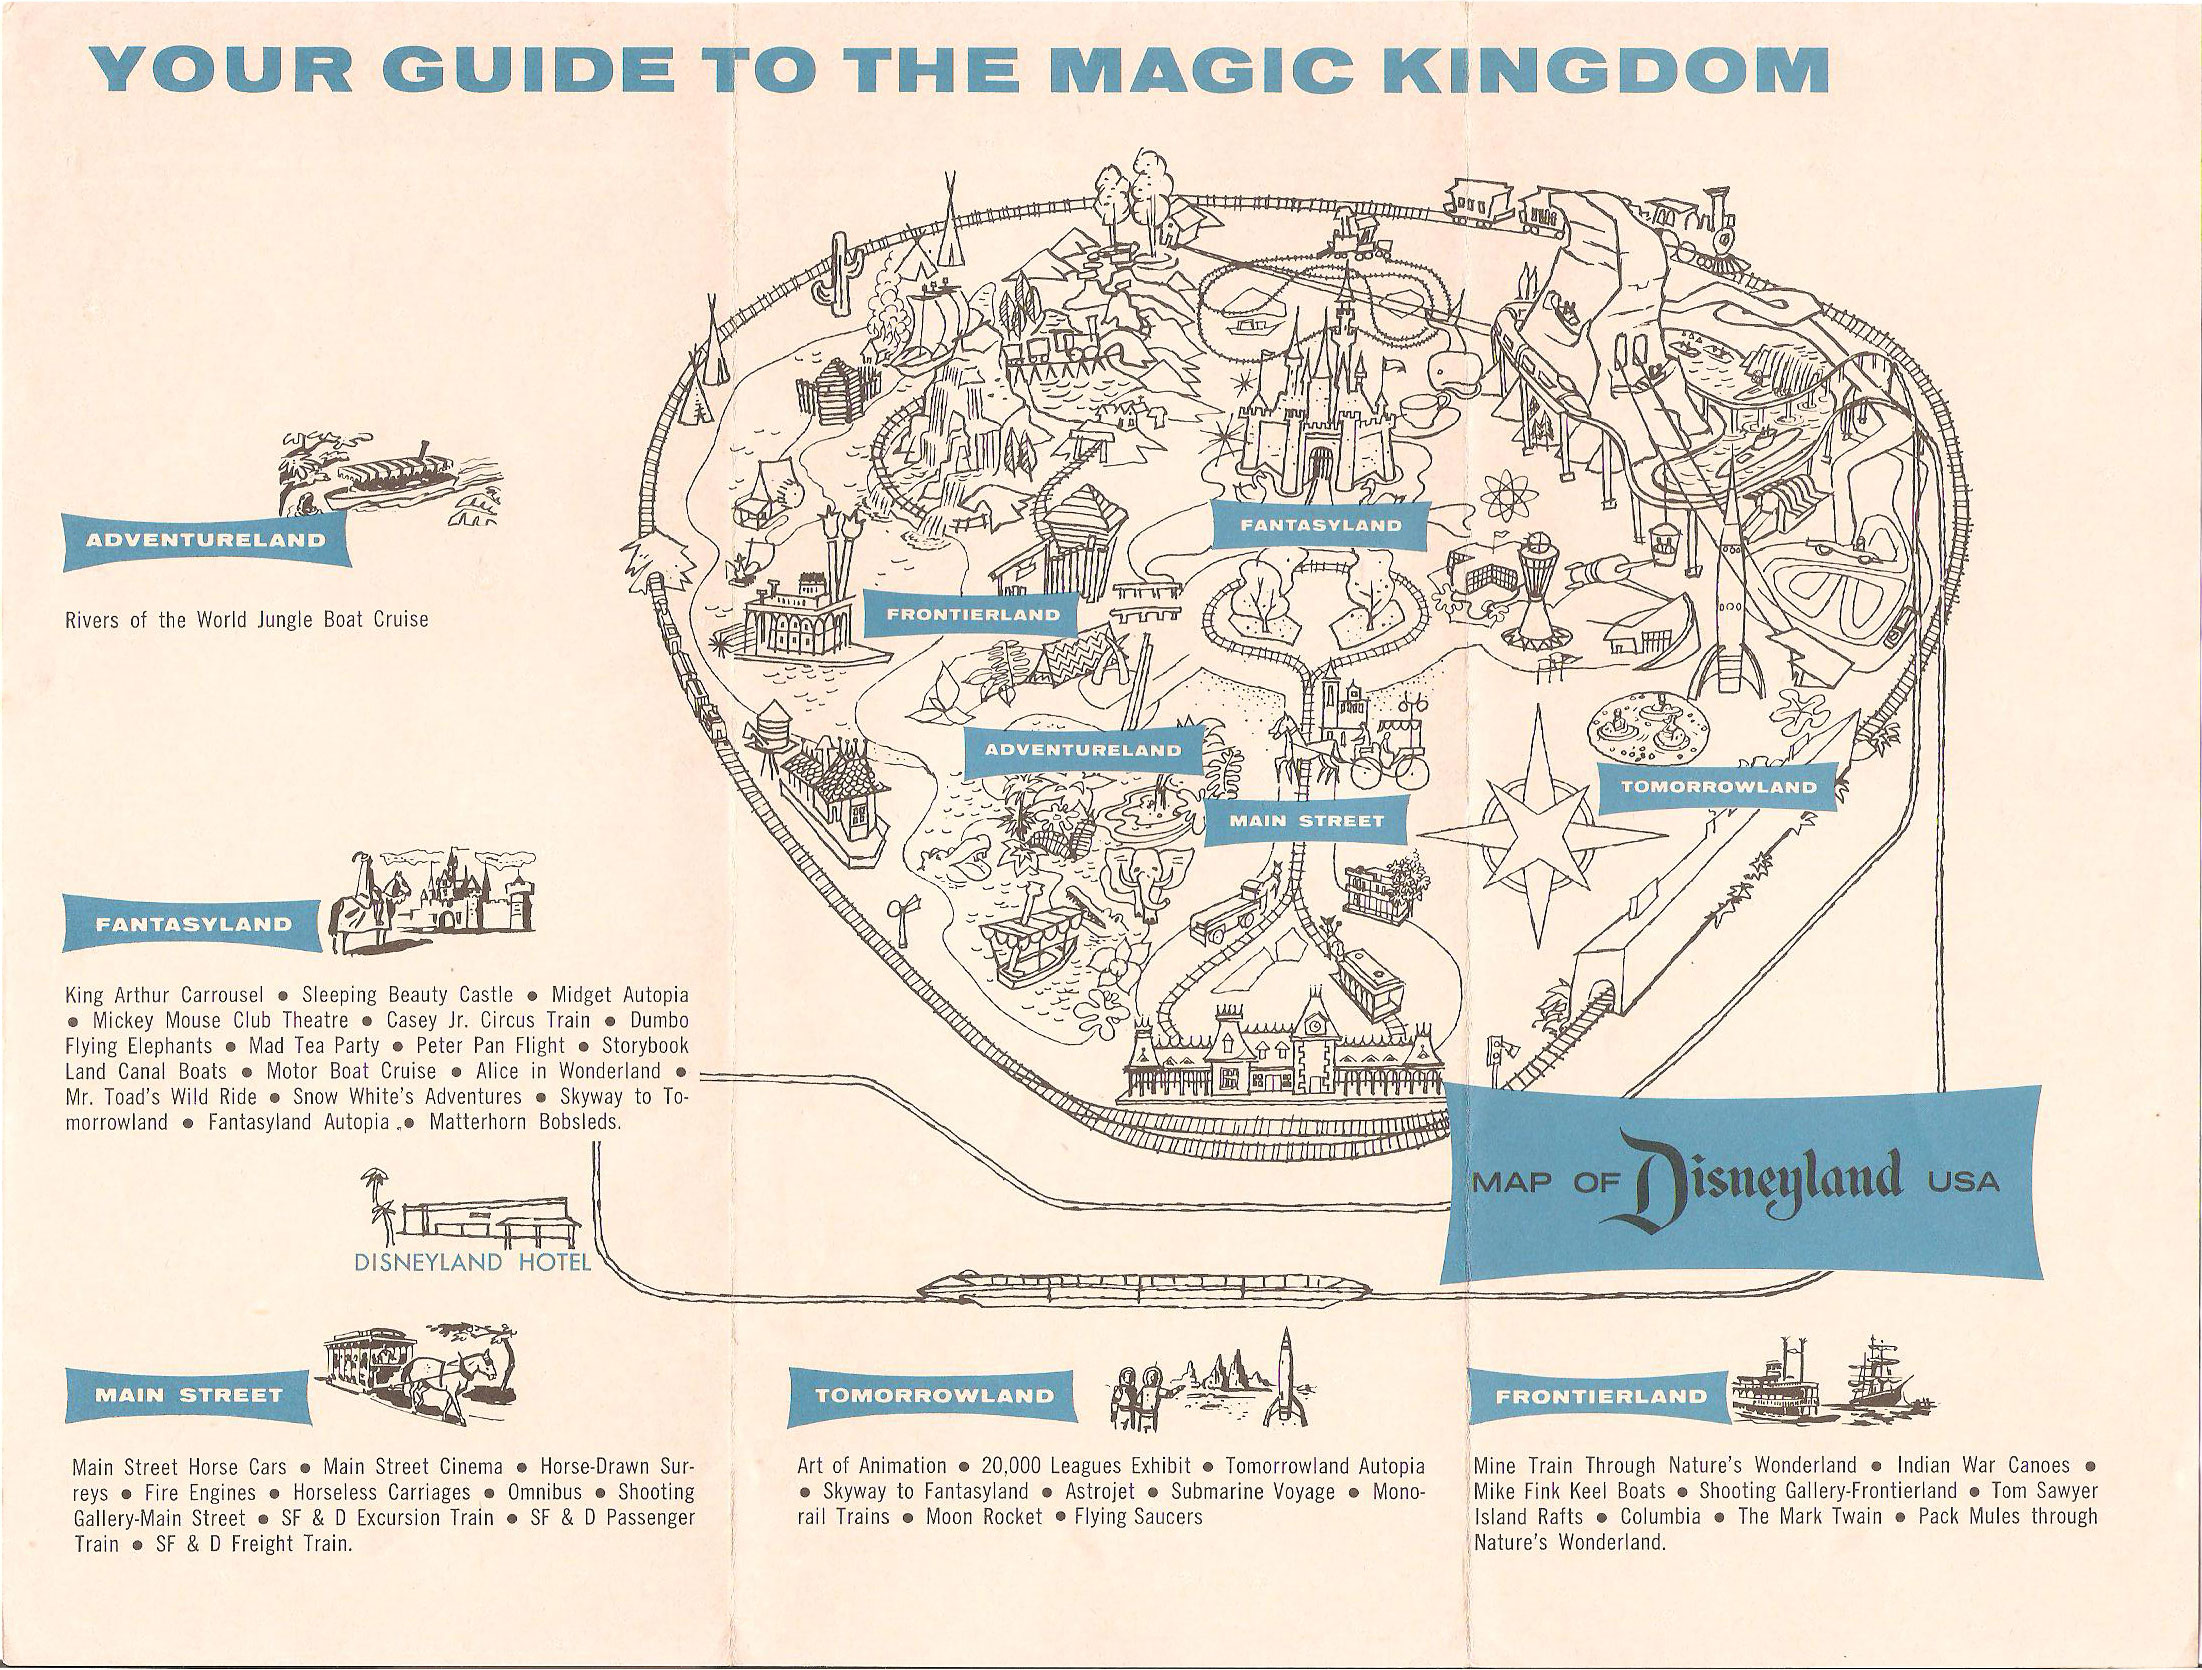 1964 Disneyland brochure: See what you missed by being born too late ...